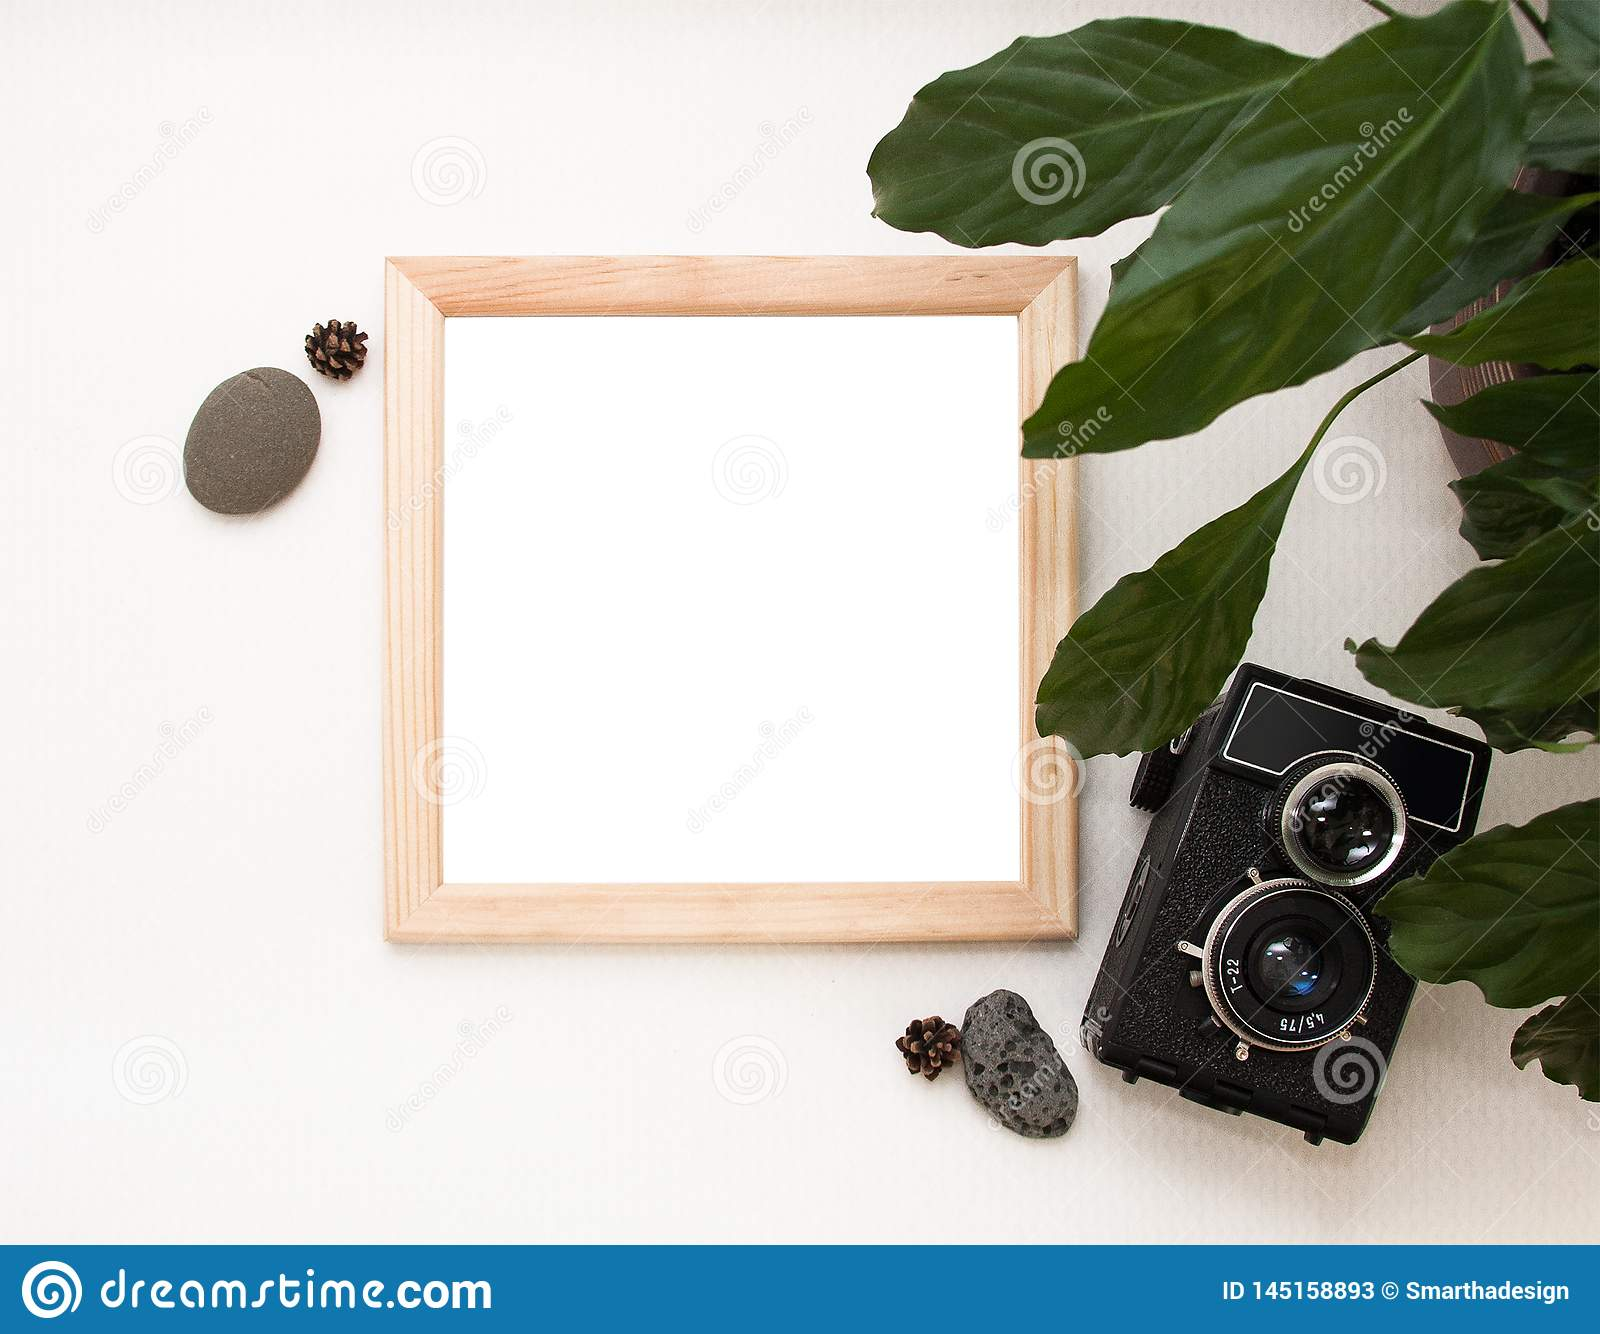 Flat lay mock up, top view, wooden frame, old camera, plant and stones. Interior layout, square poster mockup, wood frame.